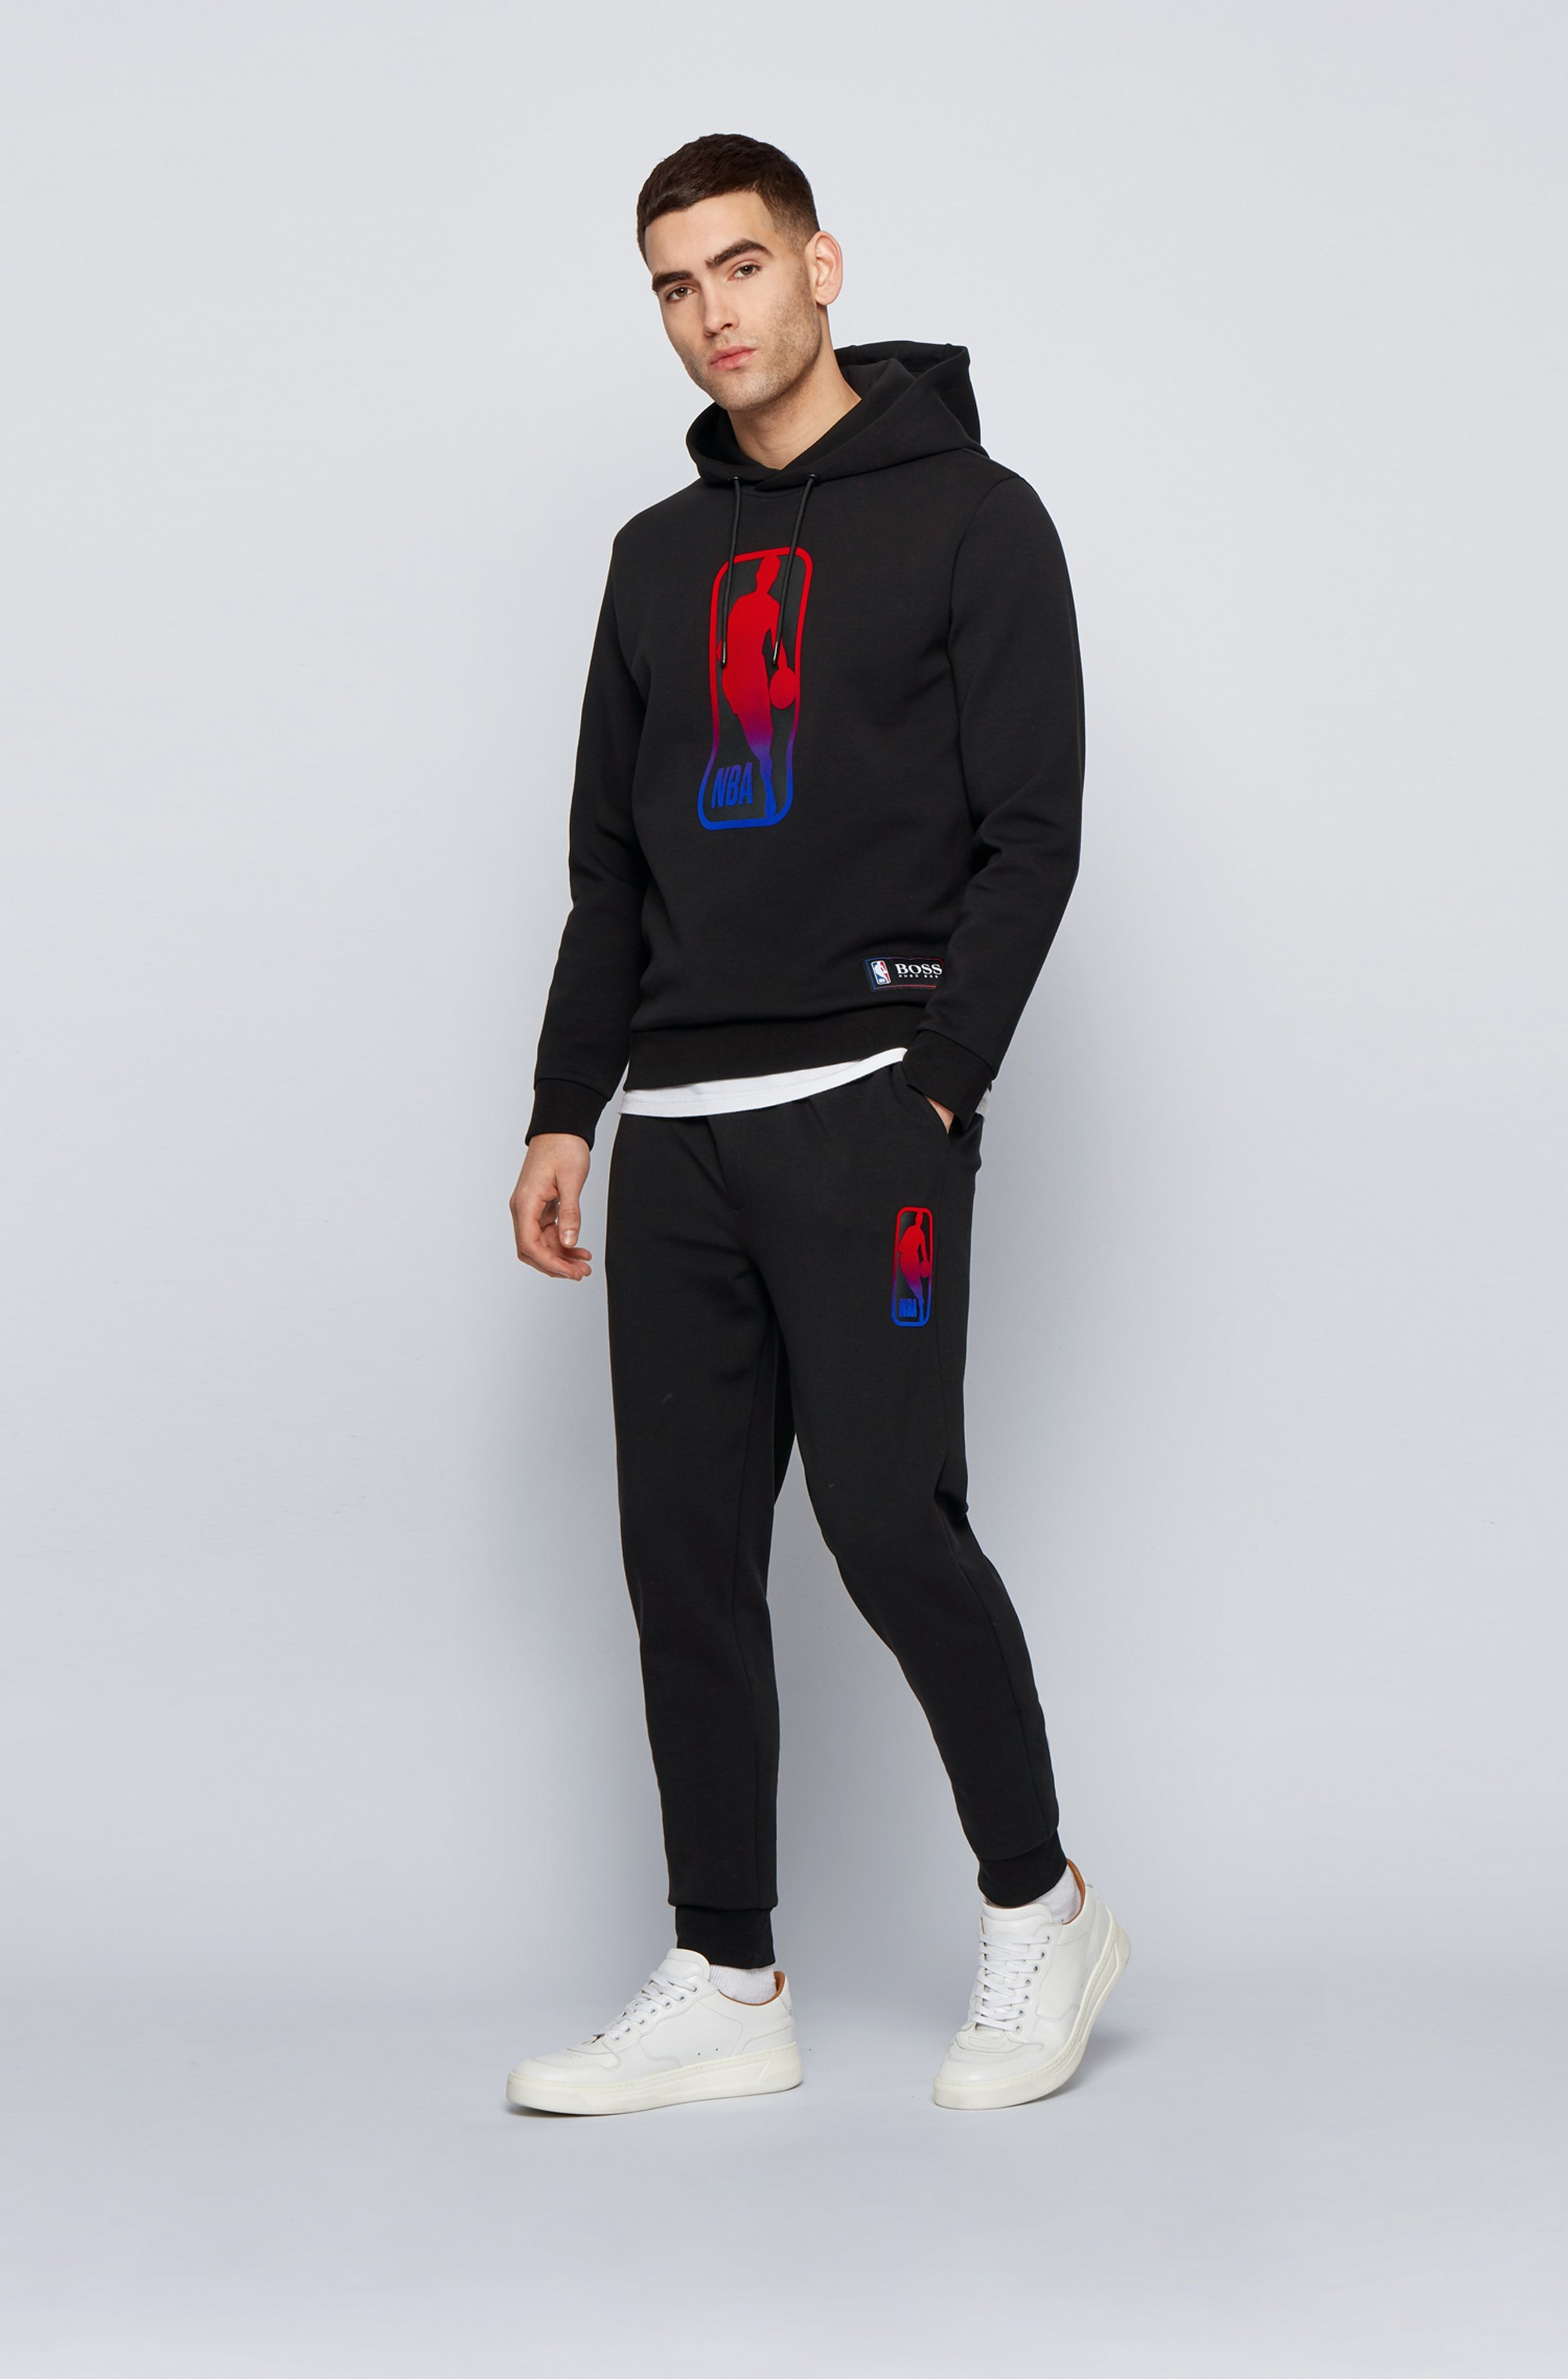 BOSS x NBA hooded sweatshirt with team logo